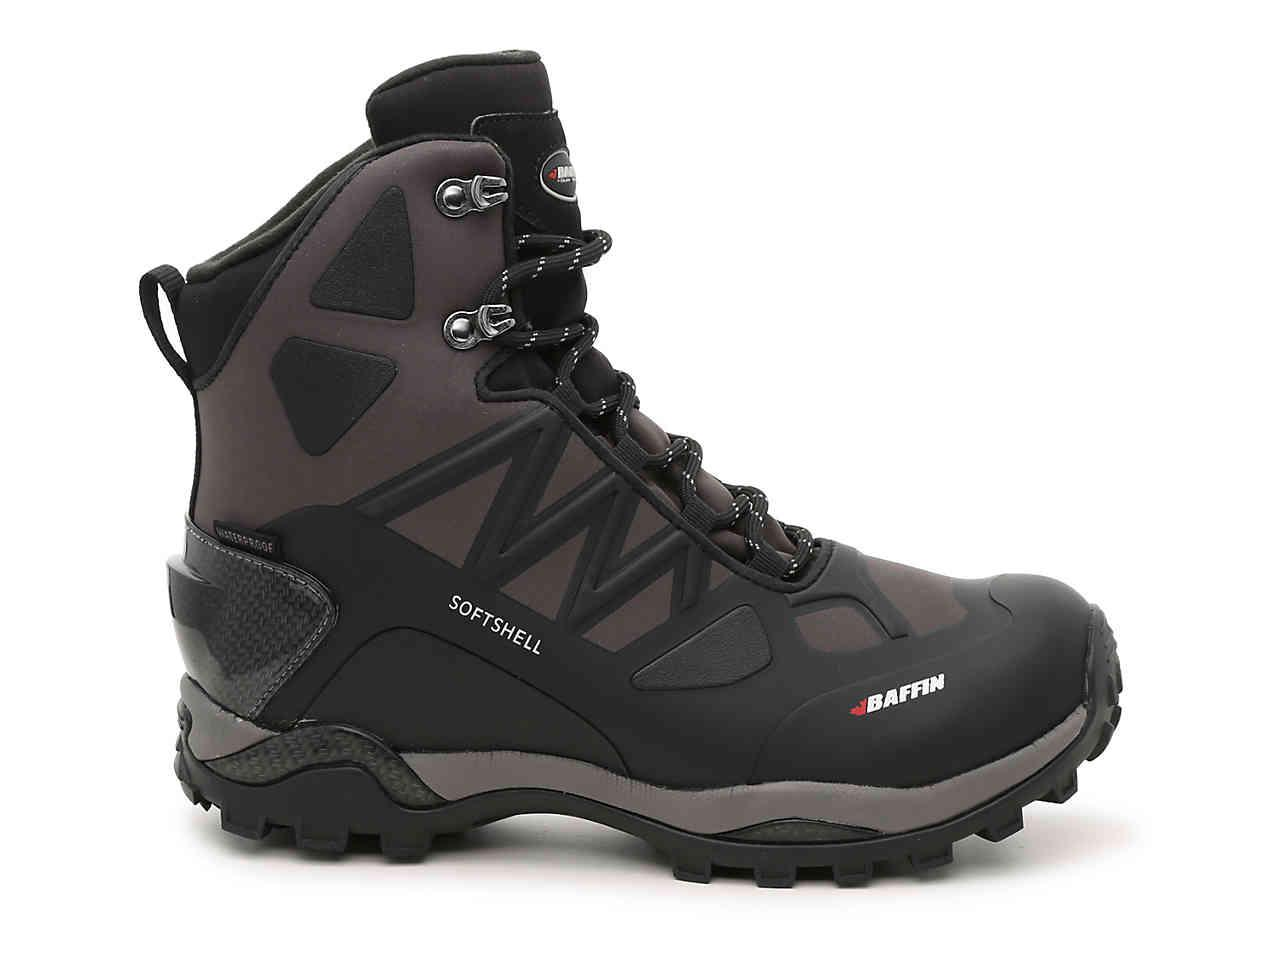 Baffin Synthetic Charge Snow Boot in